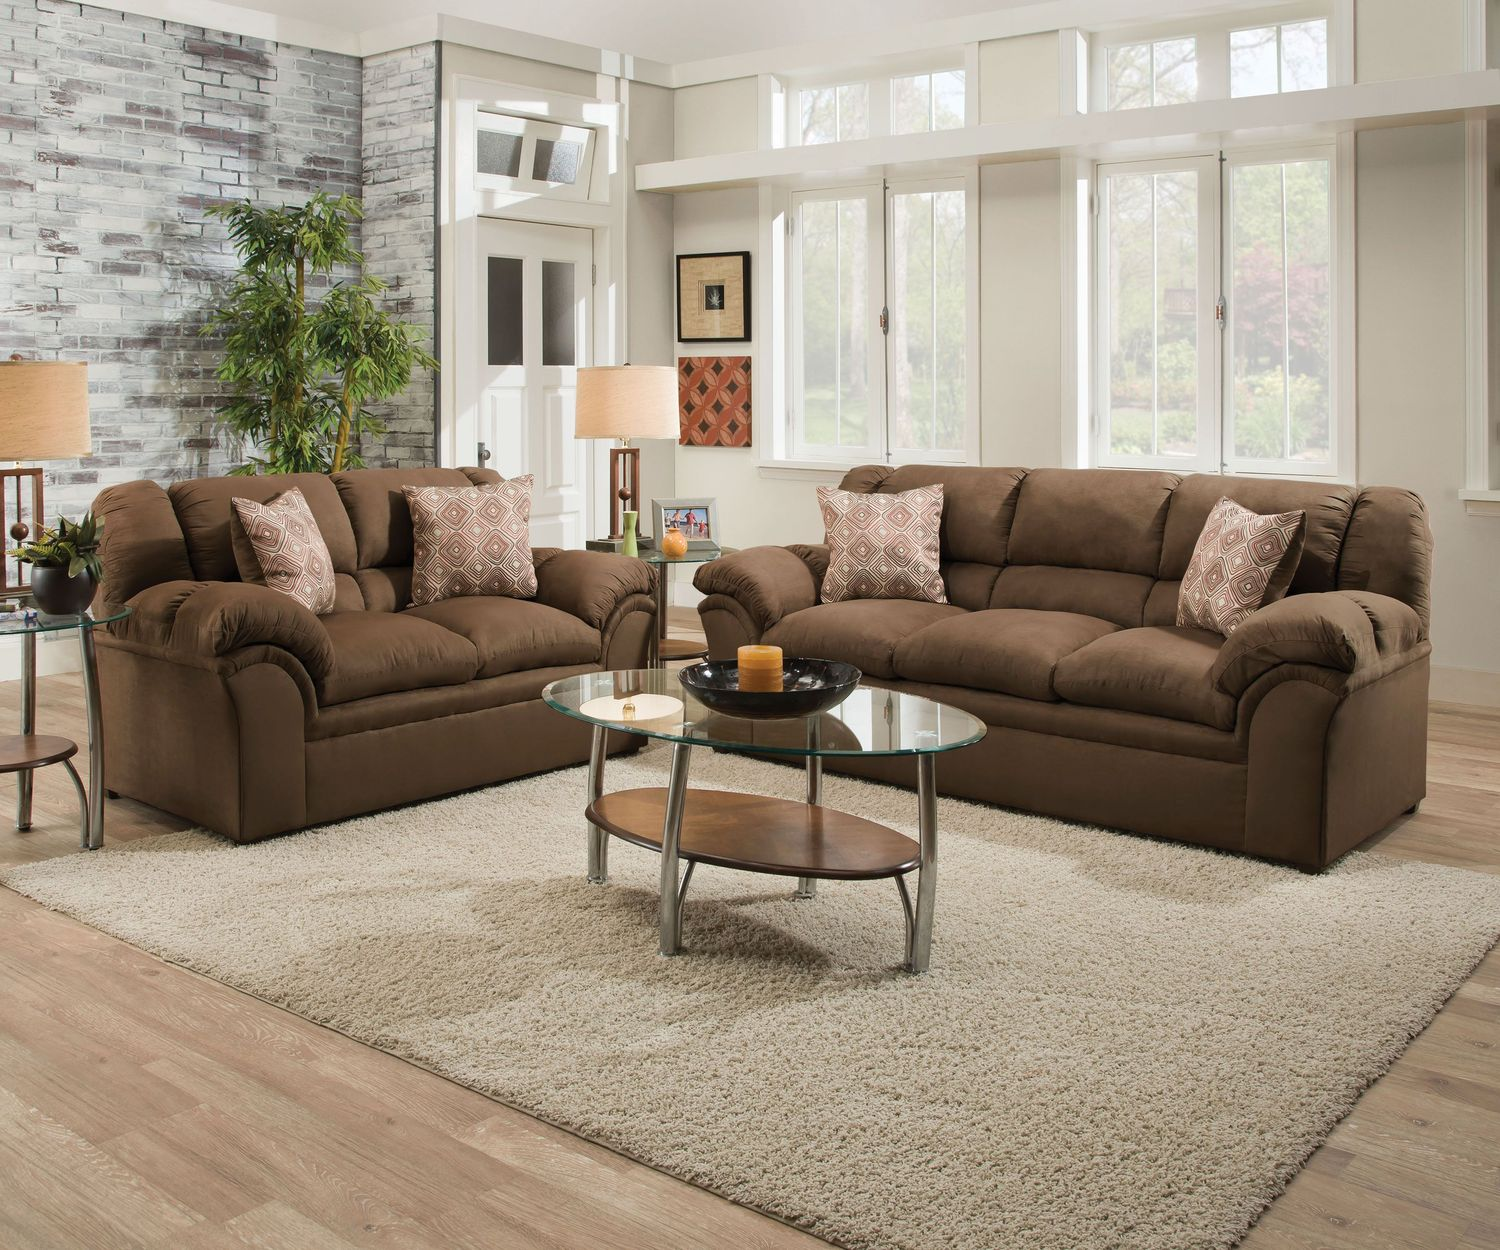 New Haven Sofa - Chocolate